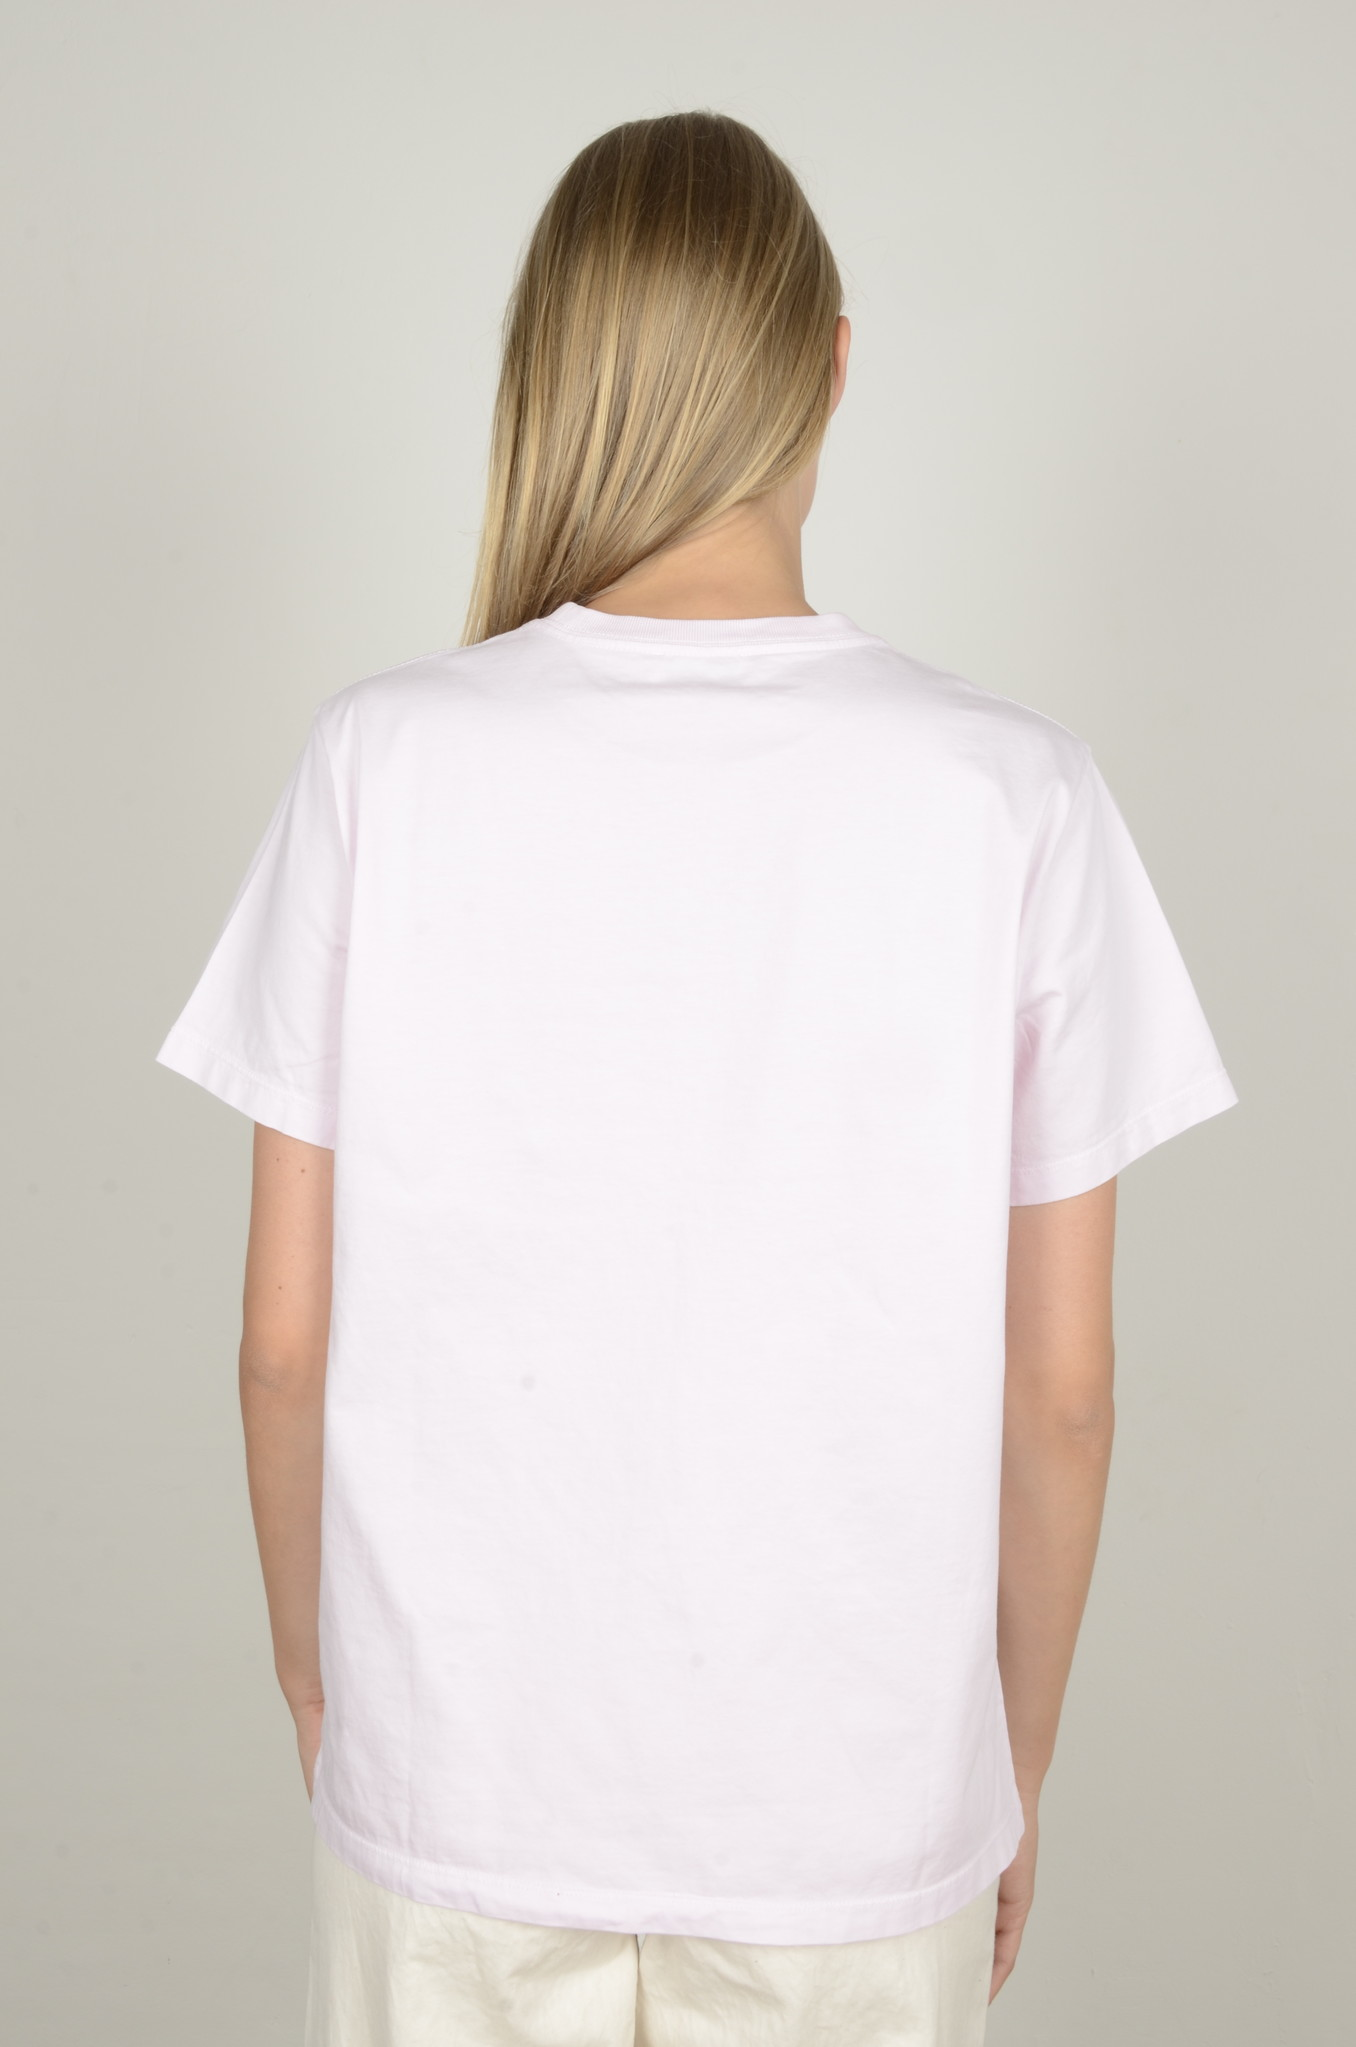 SMILEY TEE IN CHERRY BLOSSOM-3